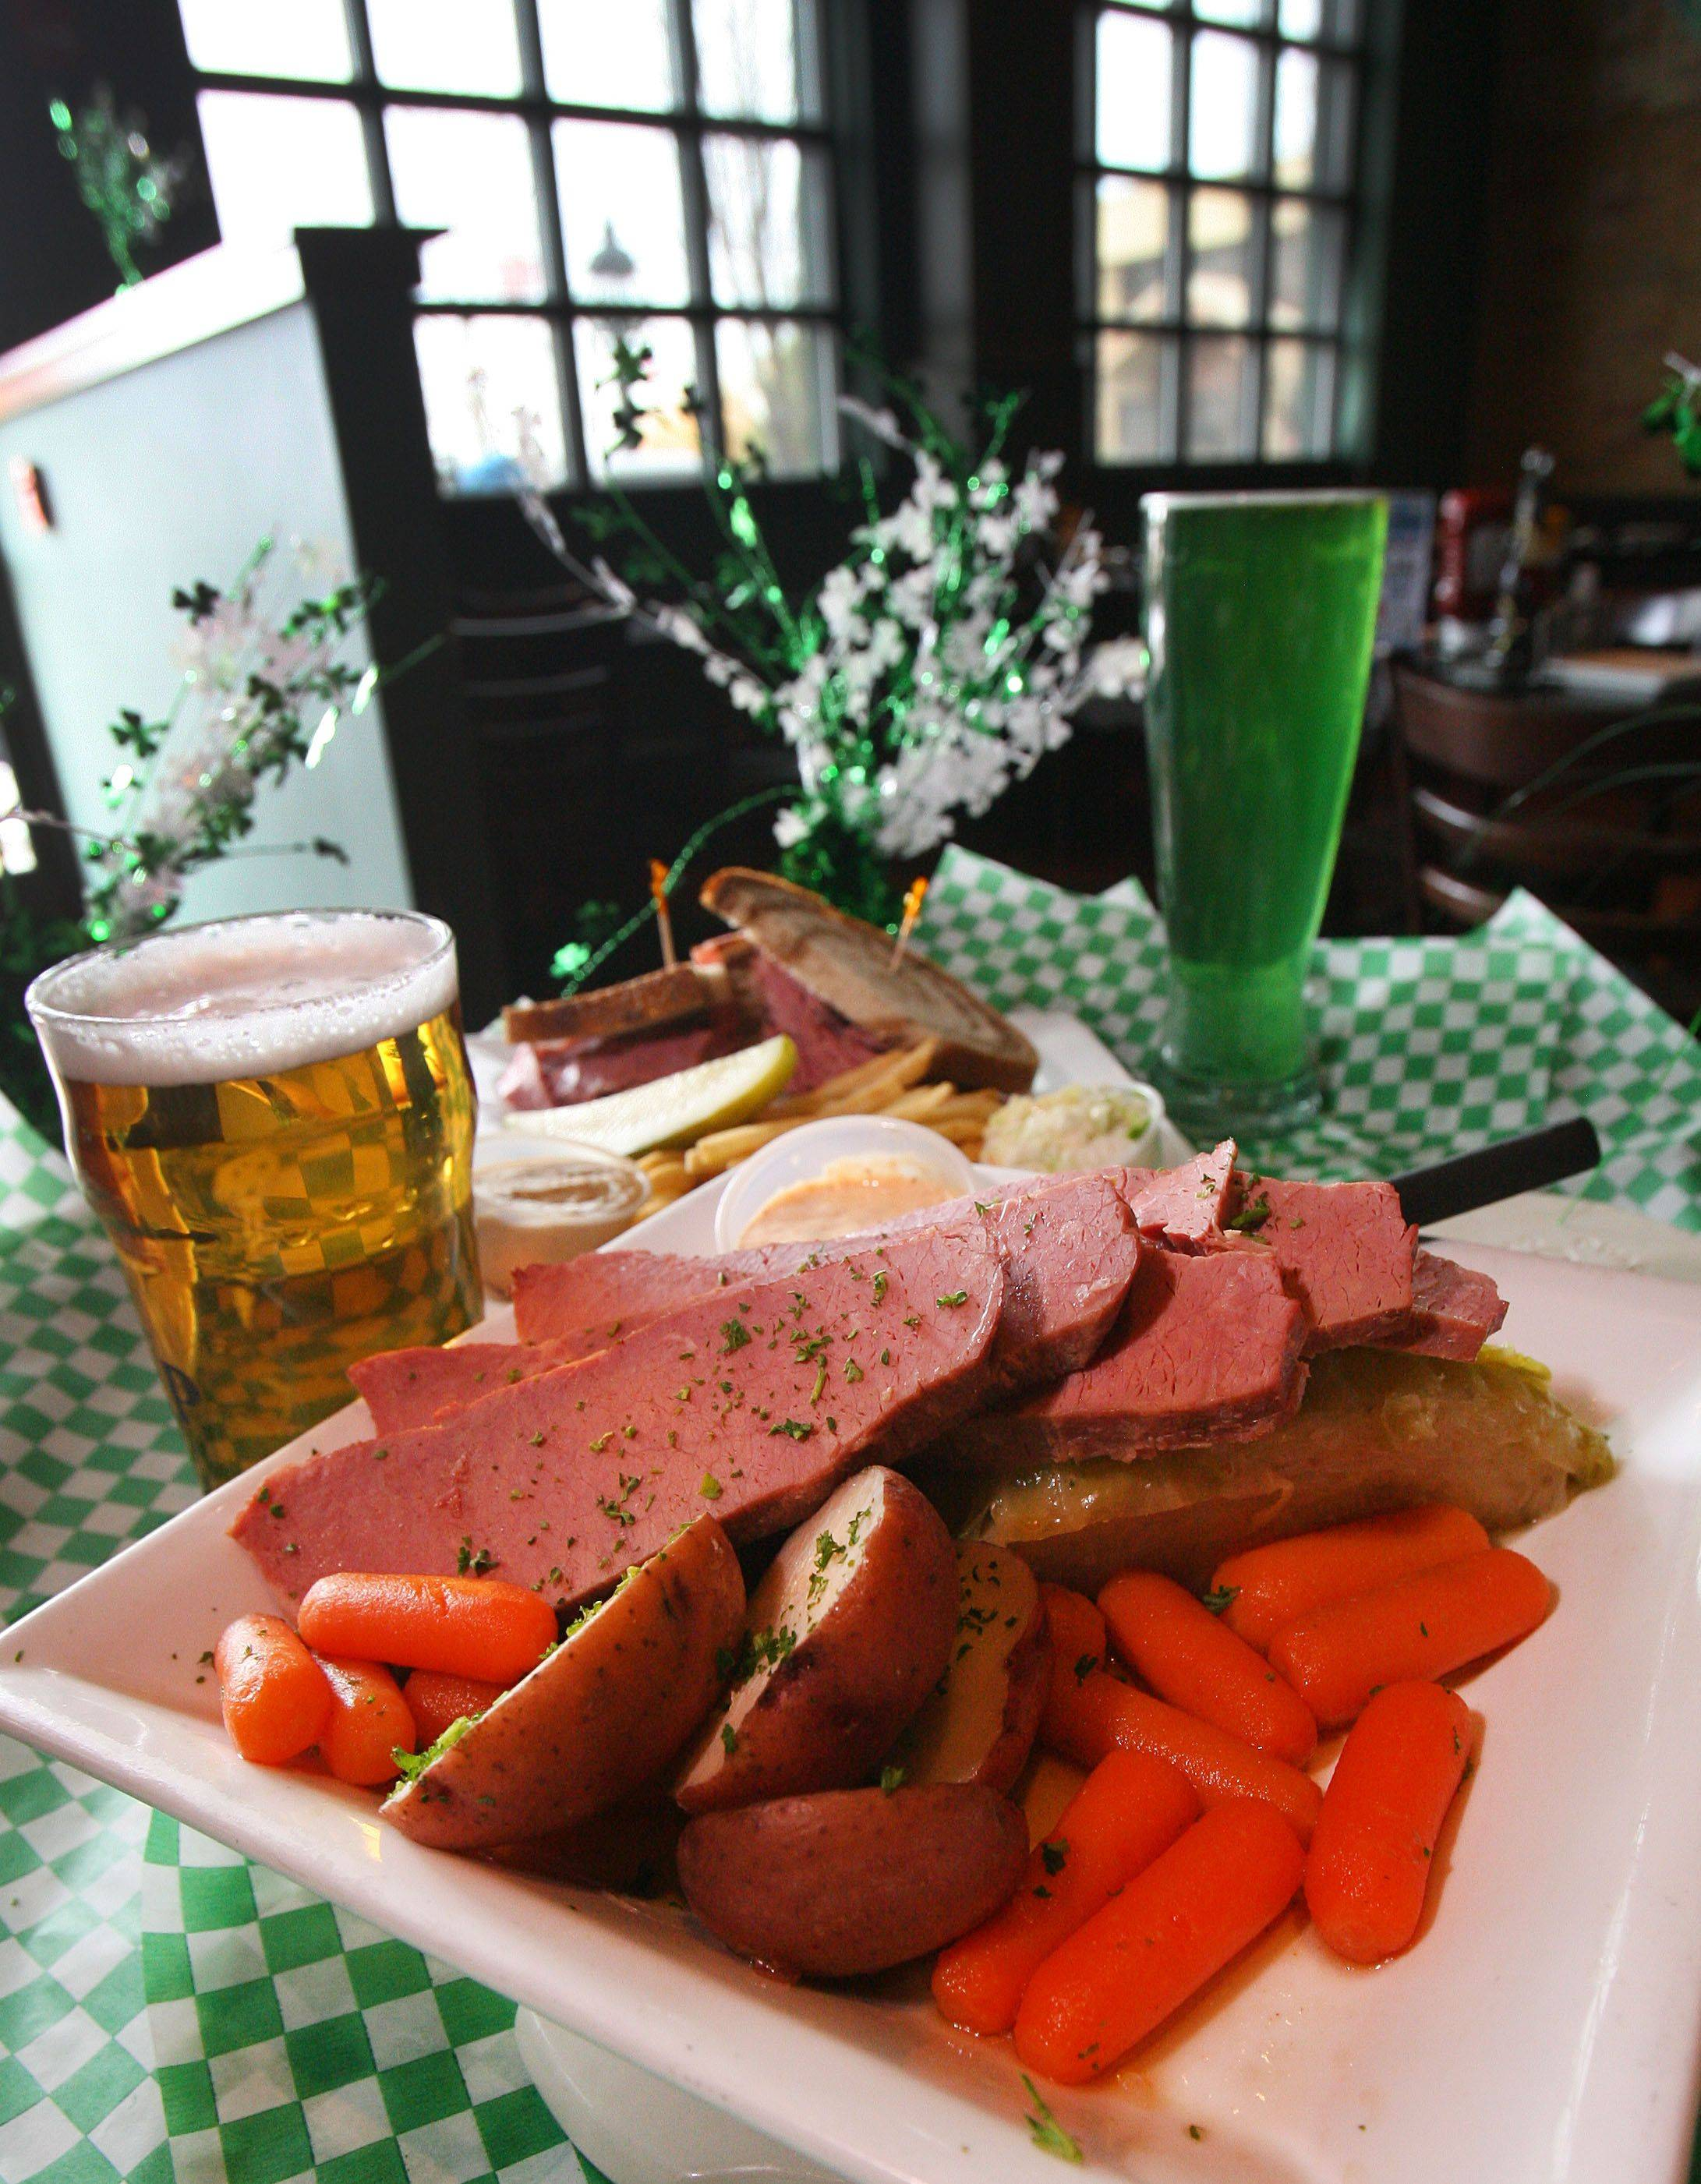 McCarthy's in Vernon Hills will be serving up thousands of pounds of corned beef — and pouring plenty of beer — for St. Patrick's Day.